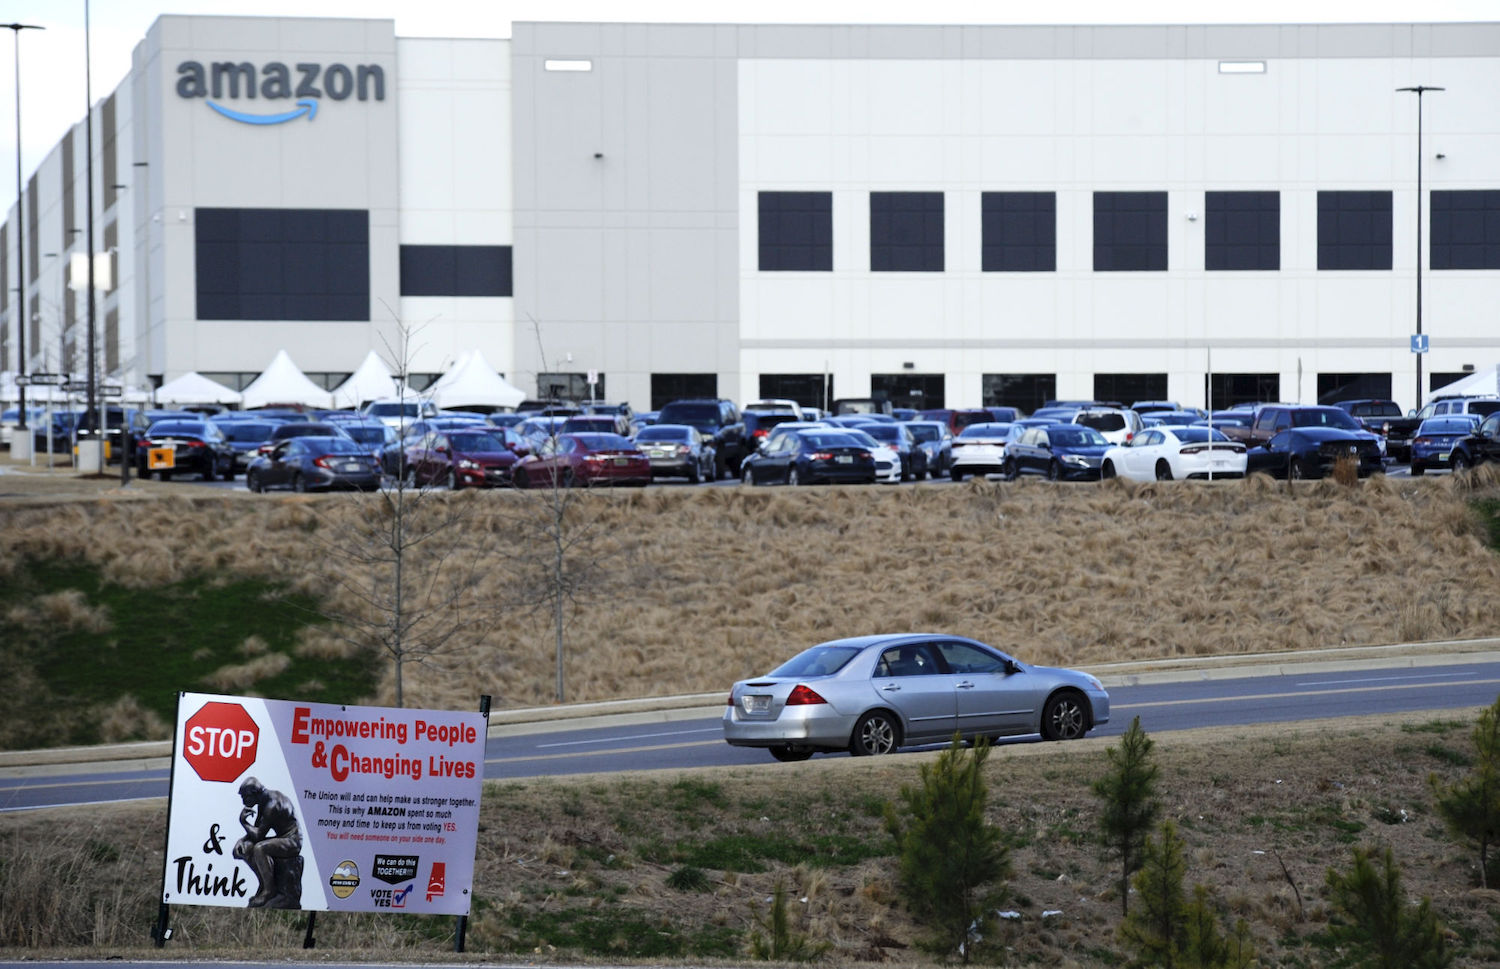 The RWDSU filed 23 objections charging that Amazon interfered with the unionization vote of 5,800 Bessemer, Ala., warehouse employees.